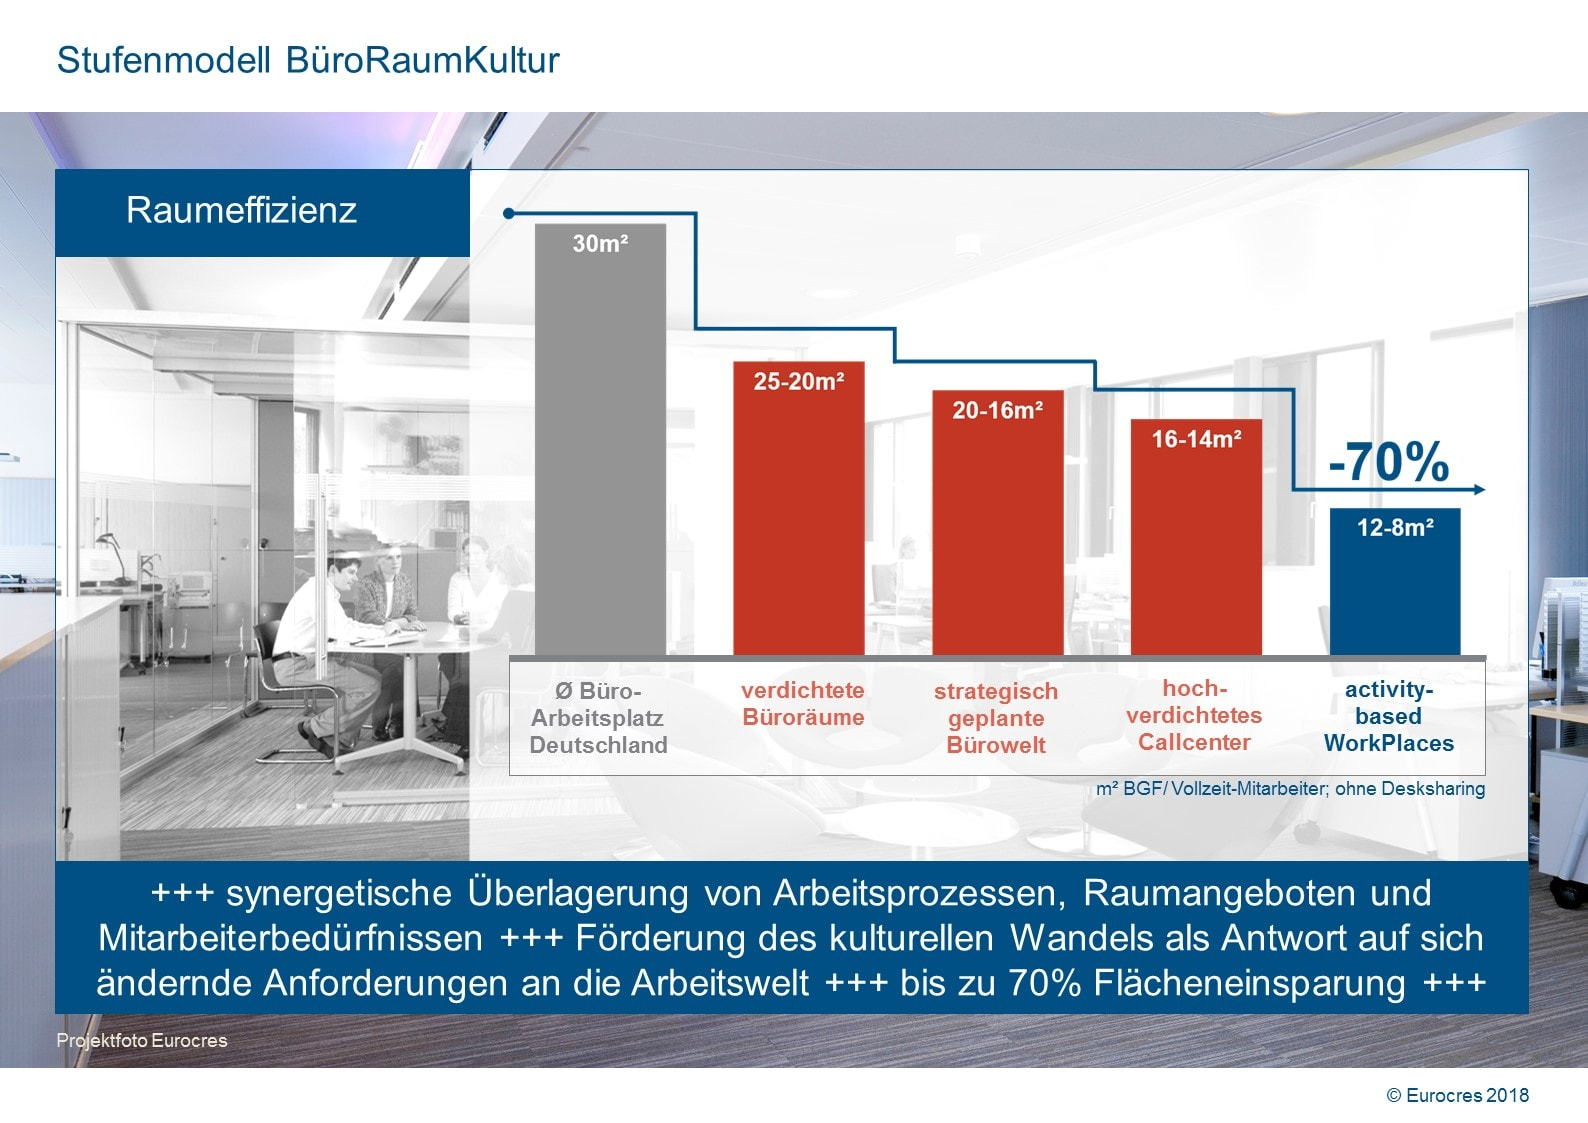 WorkPlace Flash: Stufenmodell BüroRaumKultur